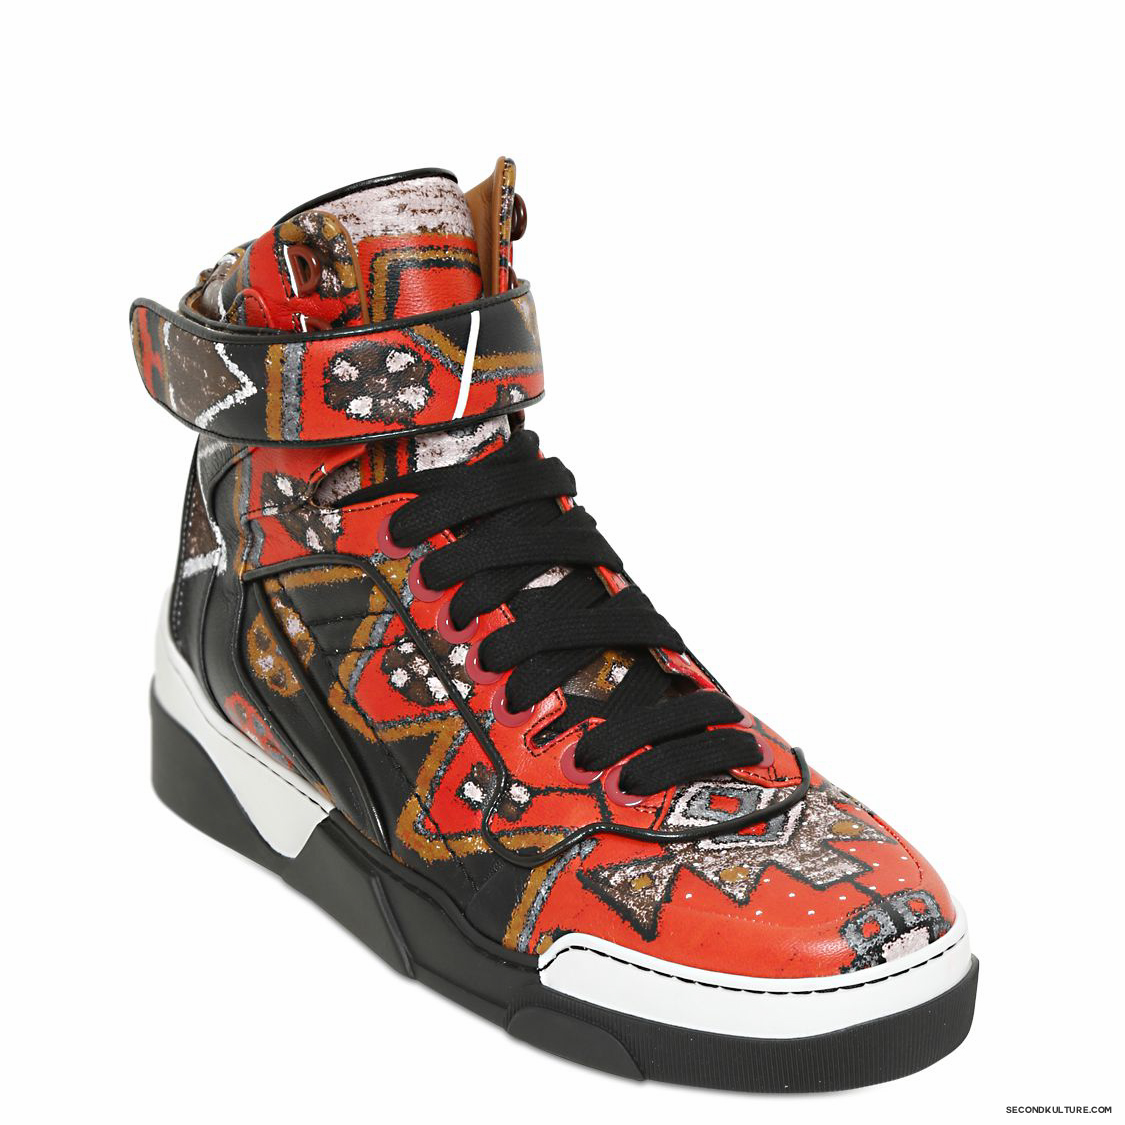 Givenchy-Native-American-Carpet-Print-Tyson-Leather-High-Top-Sneakers-Fall-Winter-2015-2